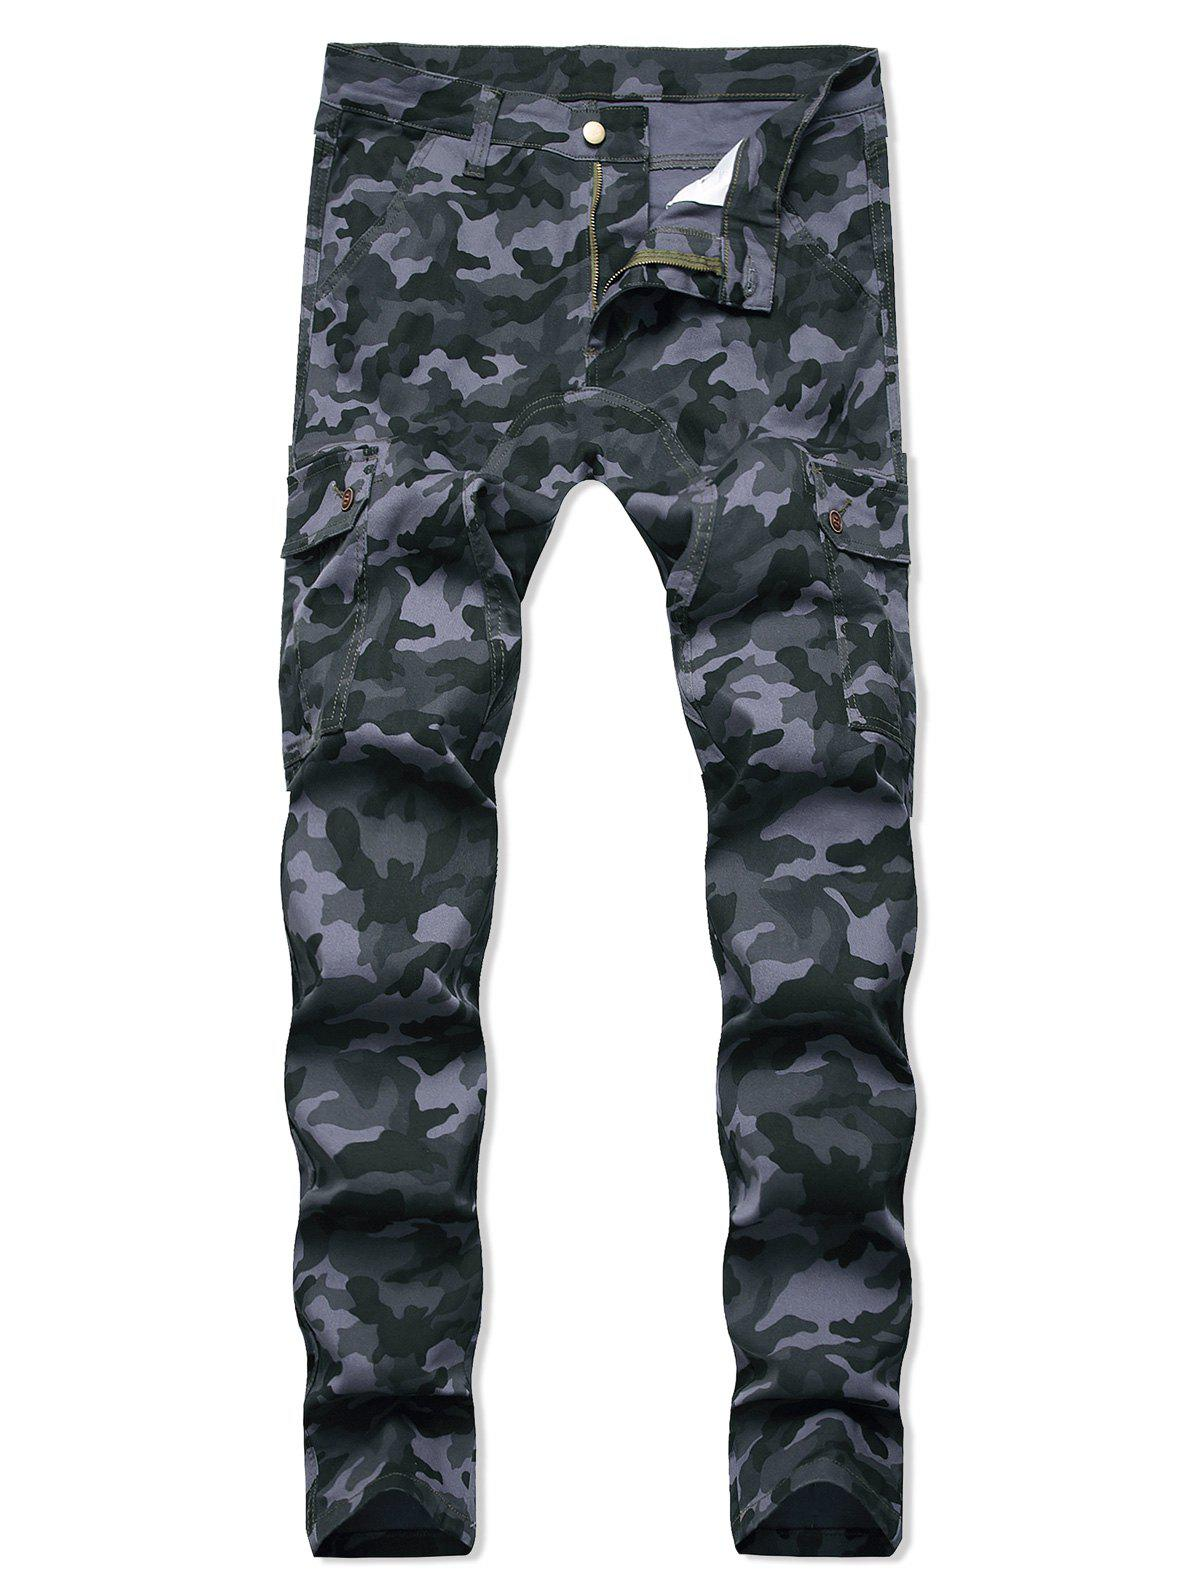 Camo Printed Zipper Fly Casual Jeans - ACU CAMOUFLAGE 36